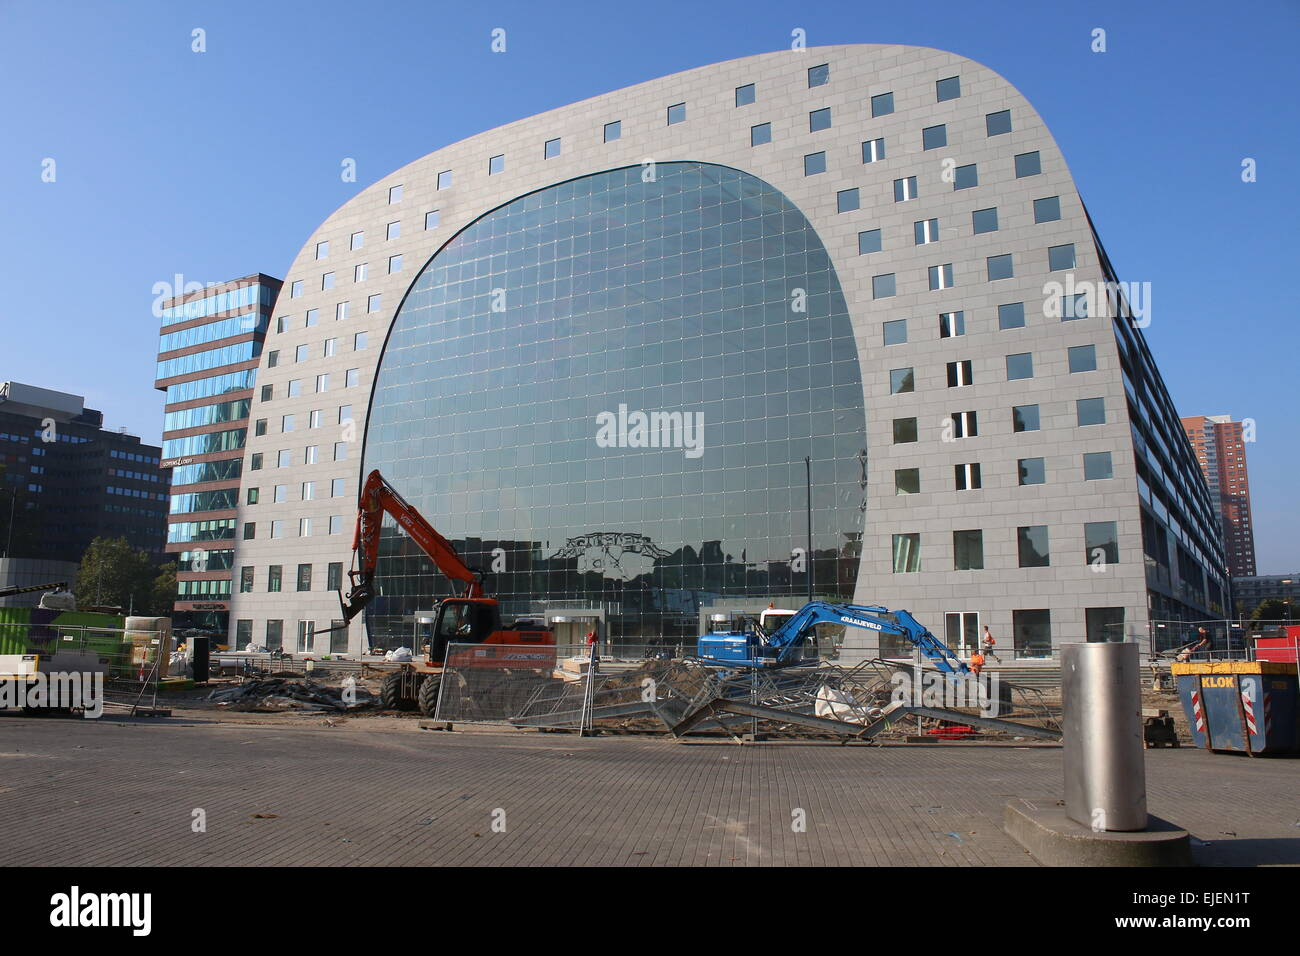 Rotterdamse Markthal (Rotterdam Market hall), adding the finishing touches just prior to the opening in October Stock Photo